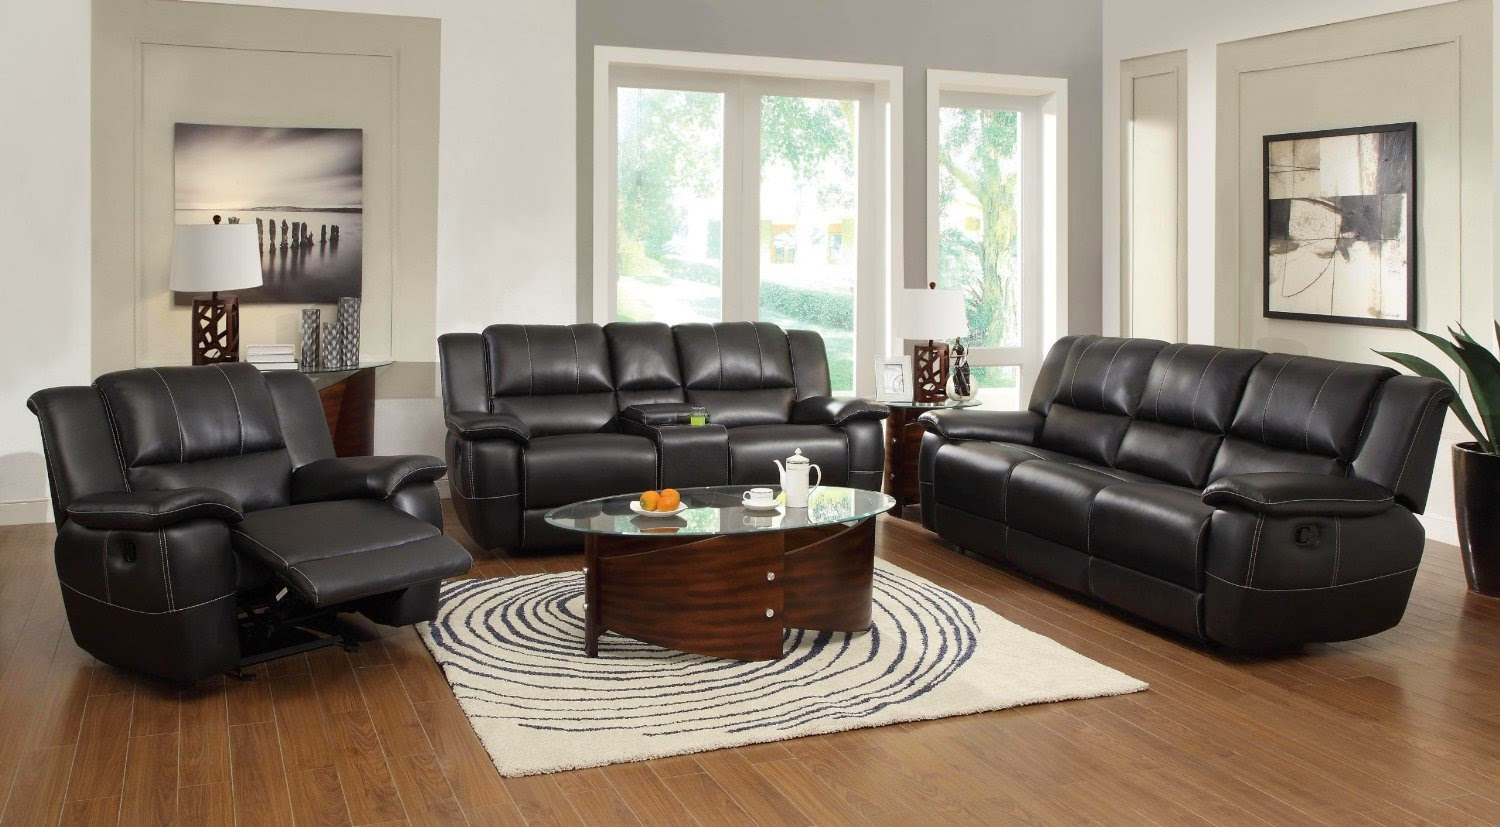 Coaster Home Power Reclining Leather Sofa Reviews : 2 seat reclining leather sofa - islam-shia.org